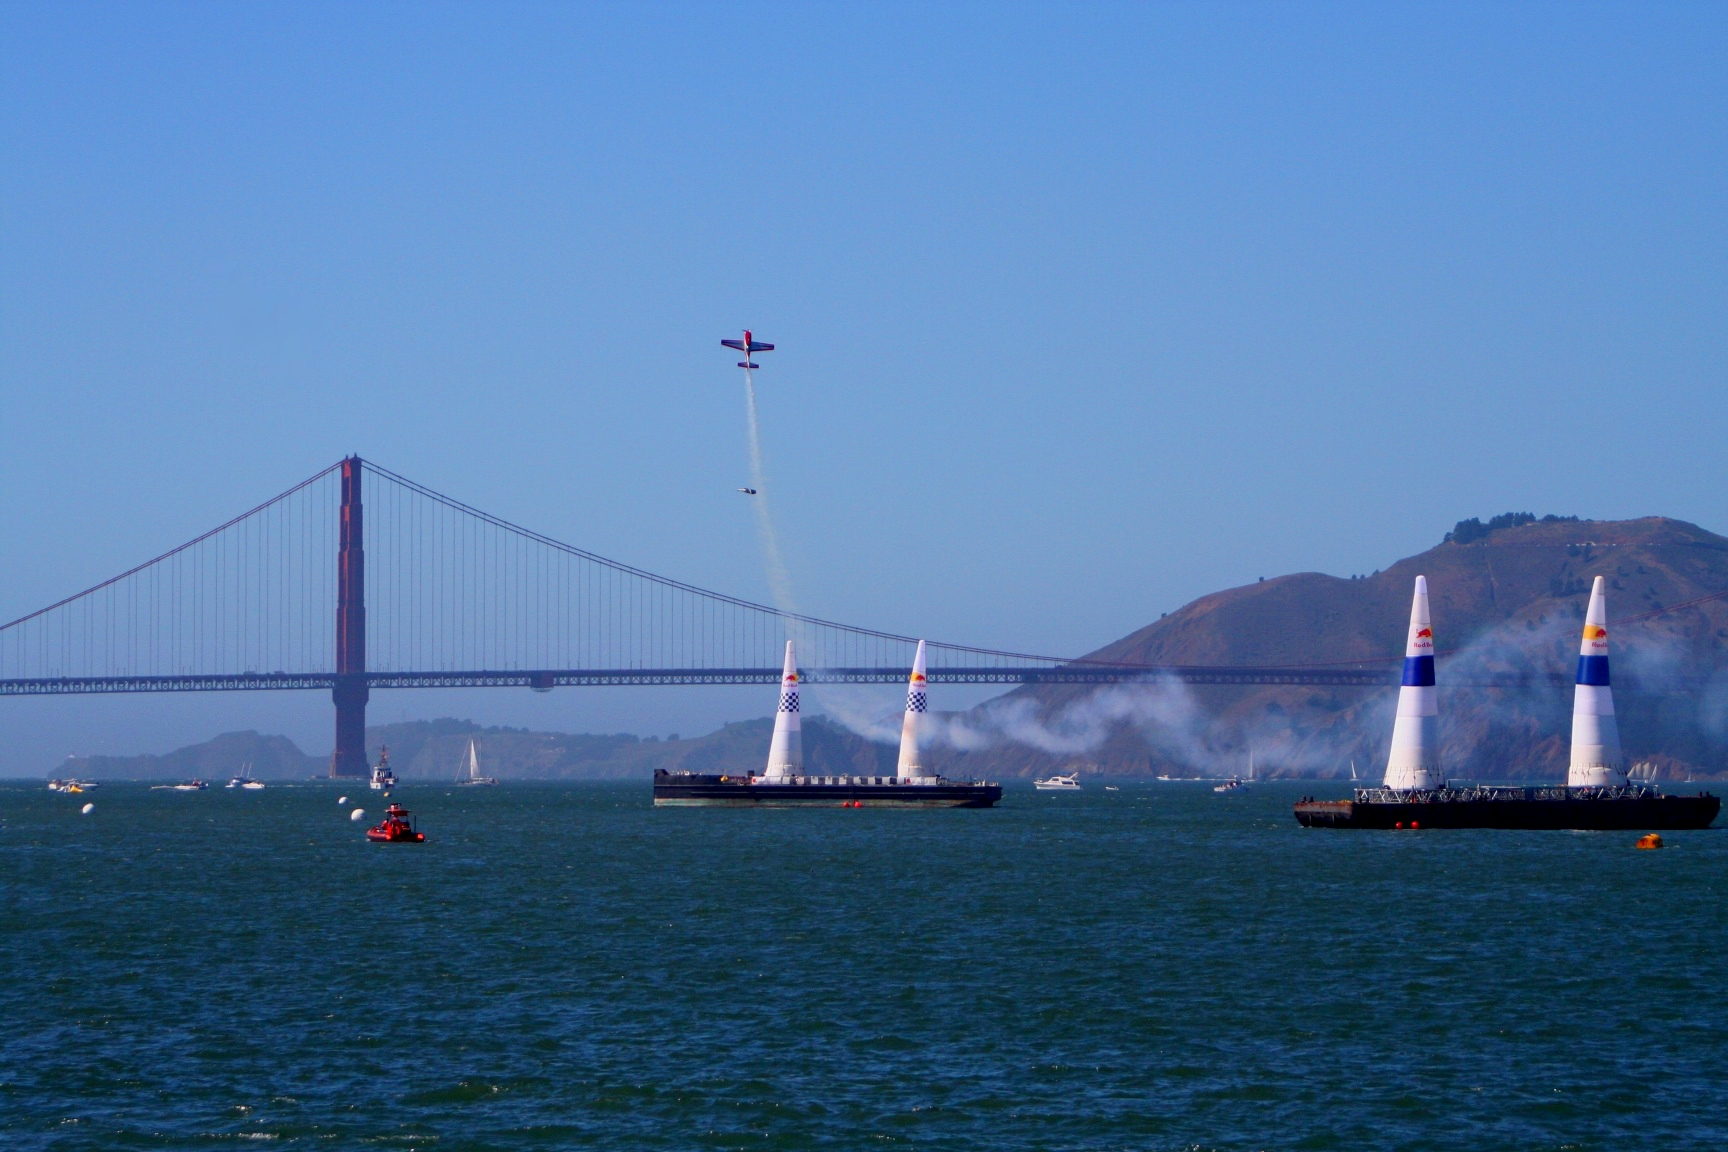 Air show over golden gate bridge